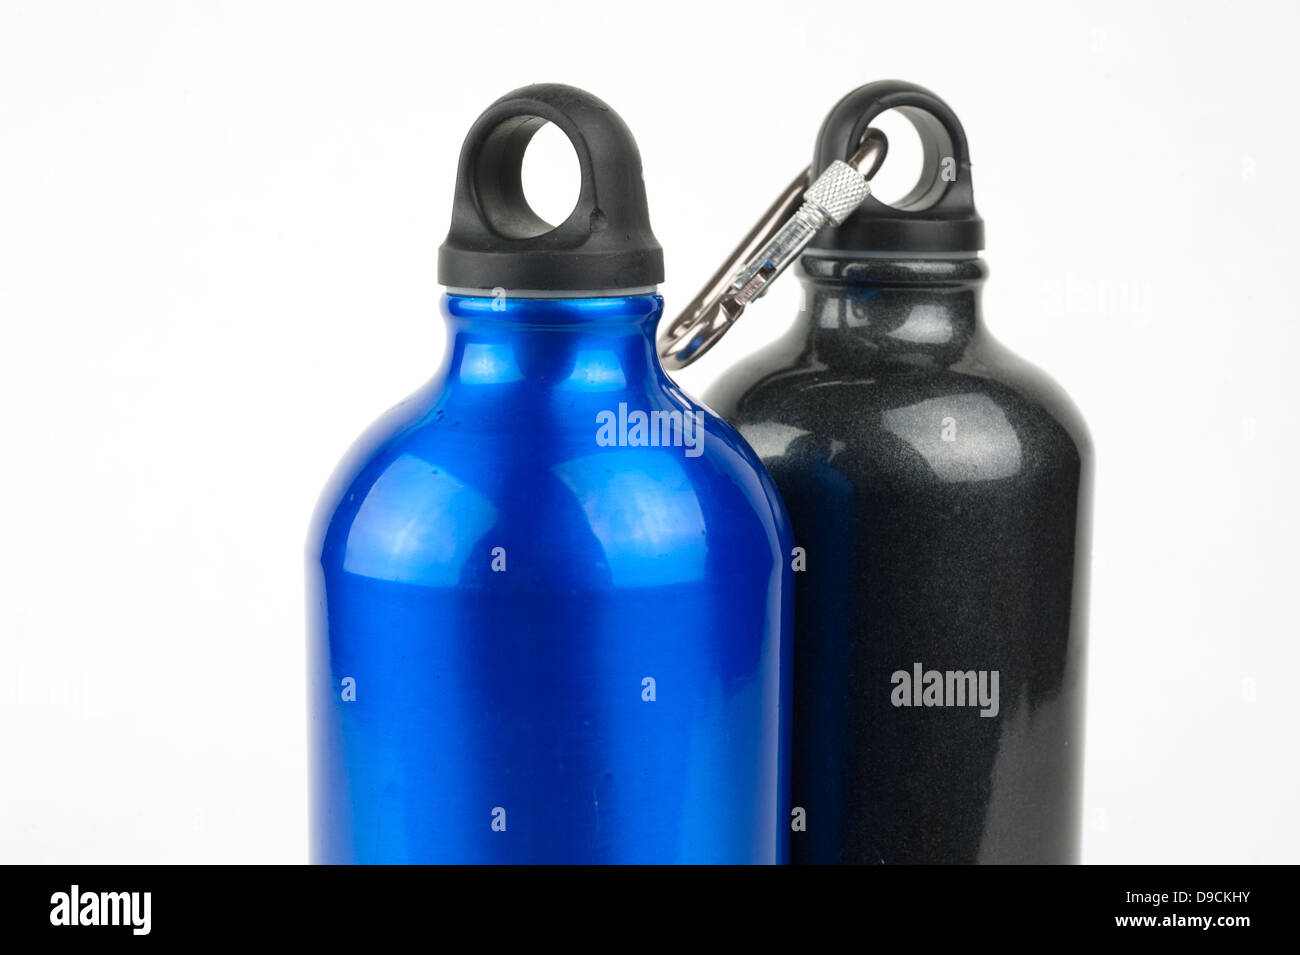 Stainless steel water bottles - Stock Image